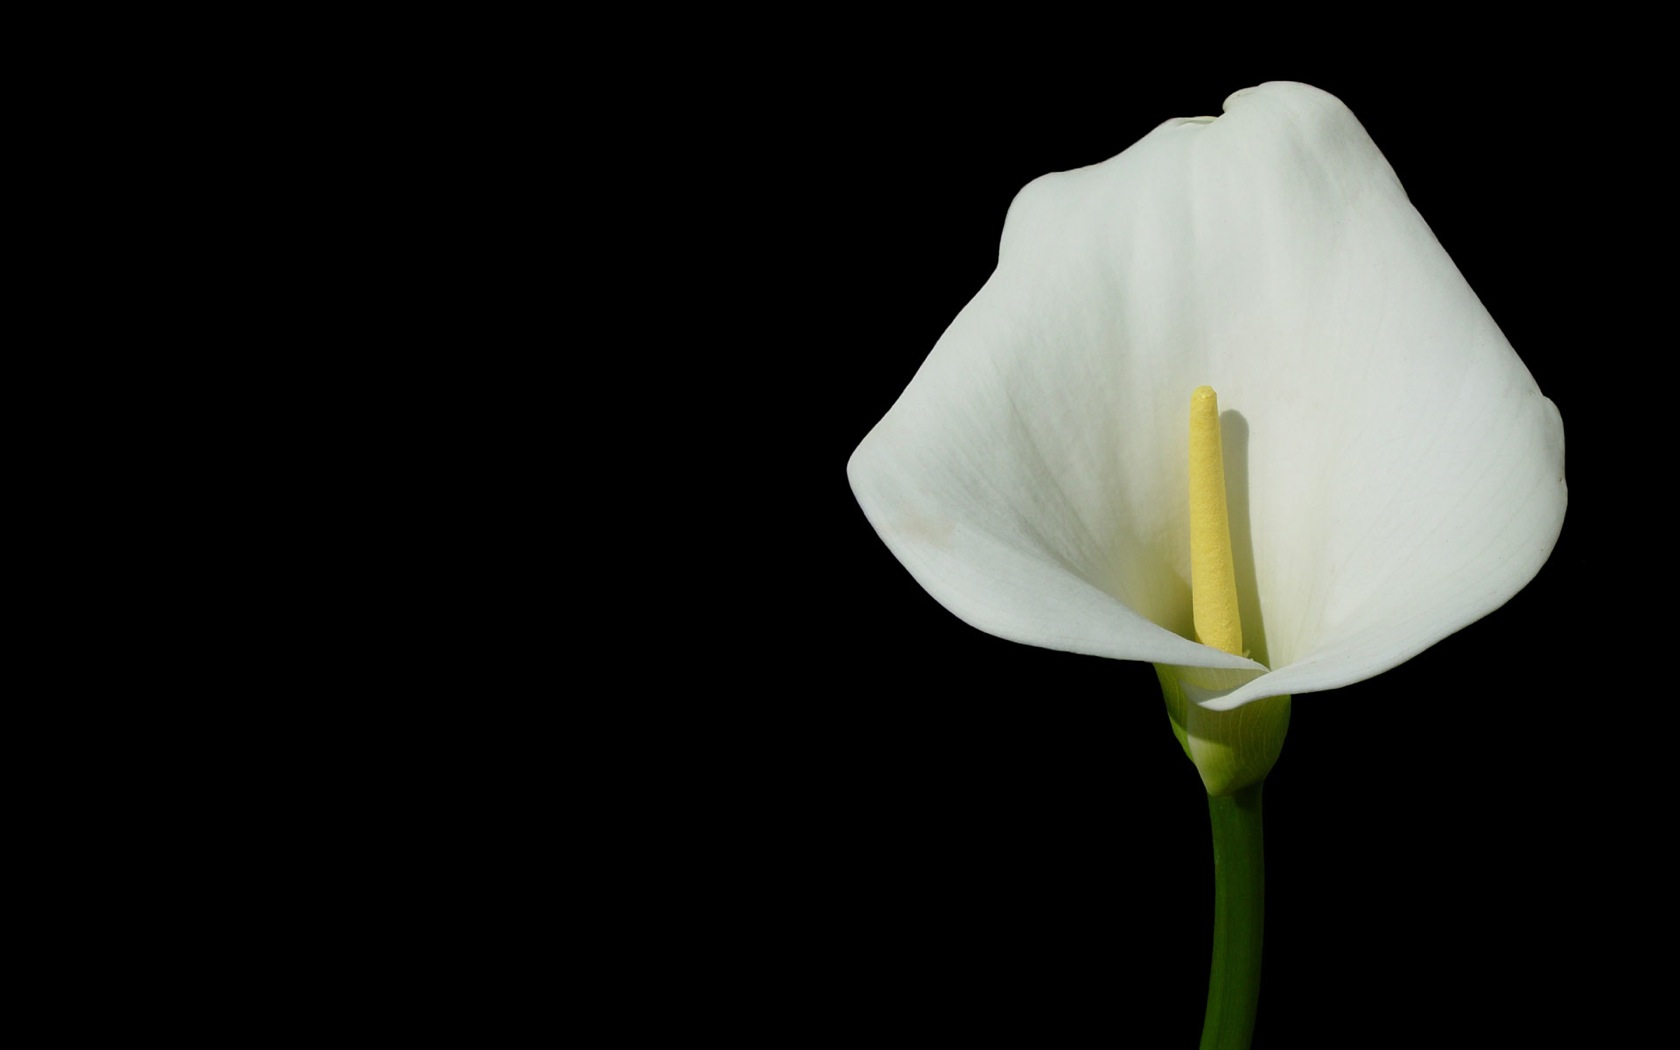 White Flower on Black Background   Wallpaper 265 1680x1050